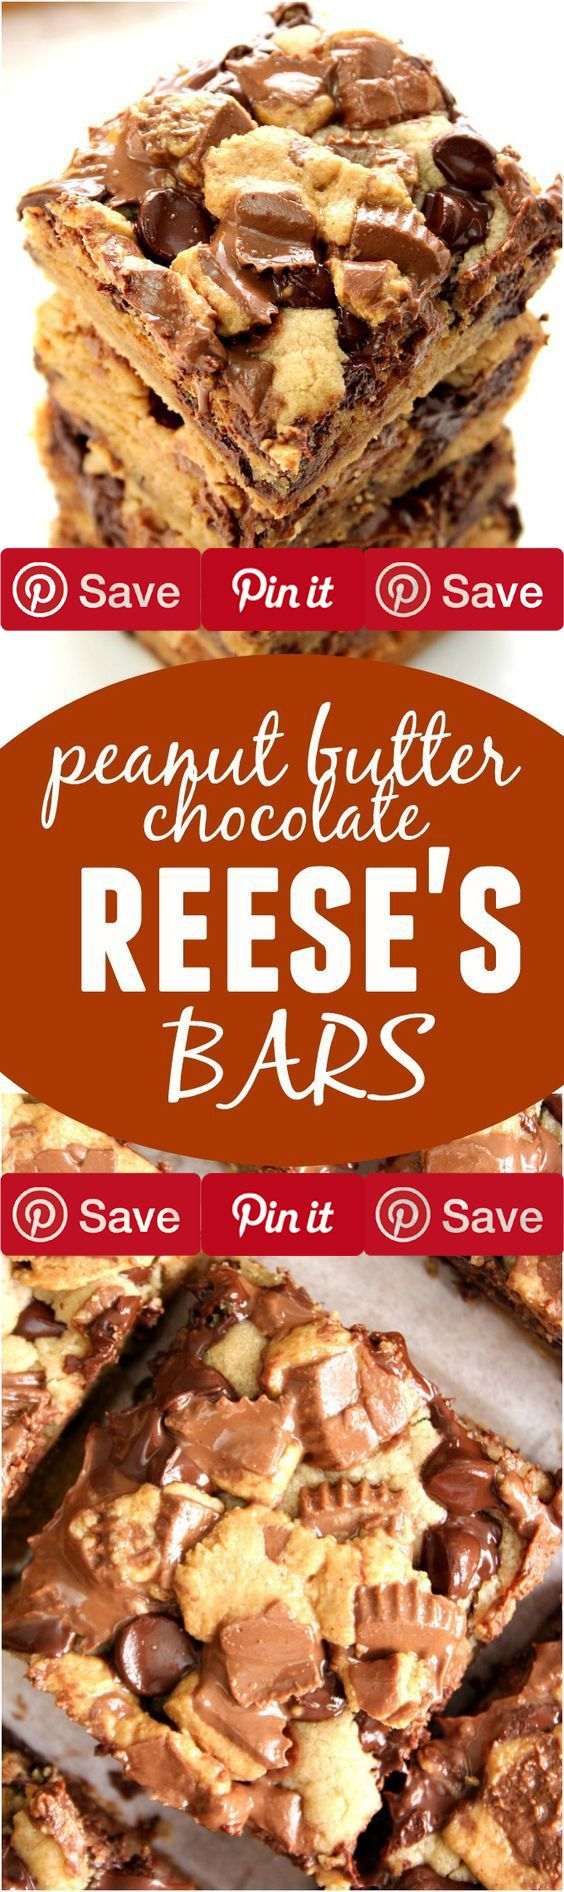 http://bestkitchenequipmentreviews.com/best-knife-sets/ Peanut Butter Chocolate Reeses Bars 36 mins to make serves 9 Ingredients #sweets Vegetarian Refrigerated 1 Egg large Condiments  cup Peanut butter creamy 8 Reeses peanut butter cups Baking & Spices 2 cups All-purpose flour 1 tsp Baking soda  cup Brown sugar packed 1 tbsp Cornstarch  cup Granulated sugar  tsp Salt 1 cup Semi-sweet chocolate chips 1 tsp Vanilla extract Dairy 6 tbsp Butter unsalted